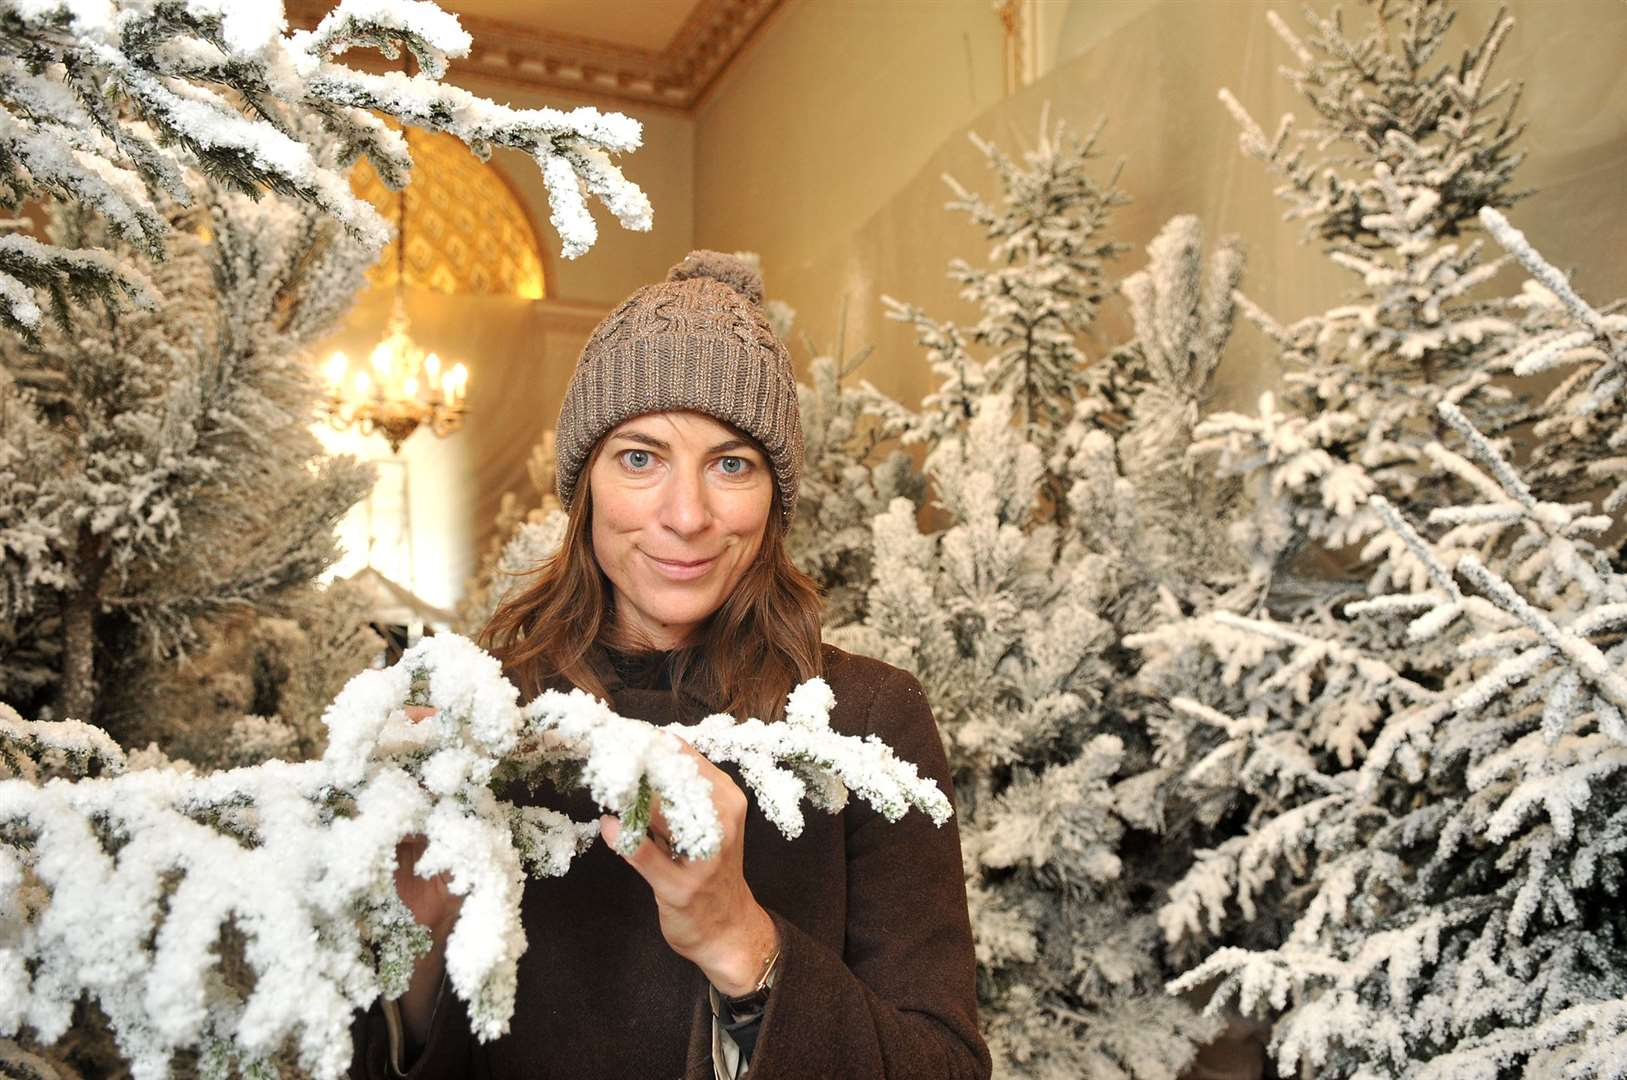 Snow covers the trees at Holkham Hall ready for Christmas. Lady Coke in the almost finished Statue Gallery